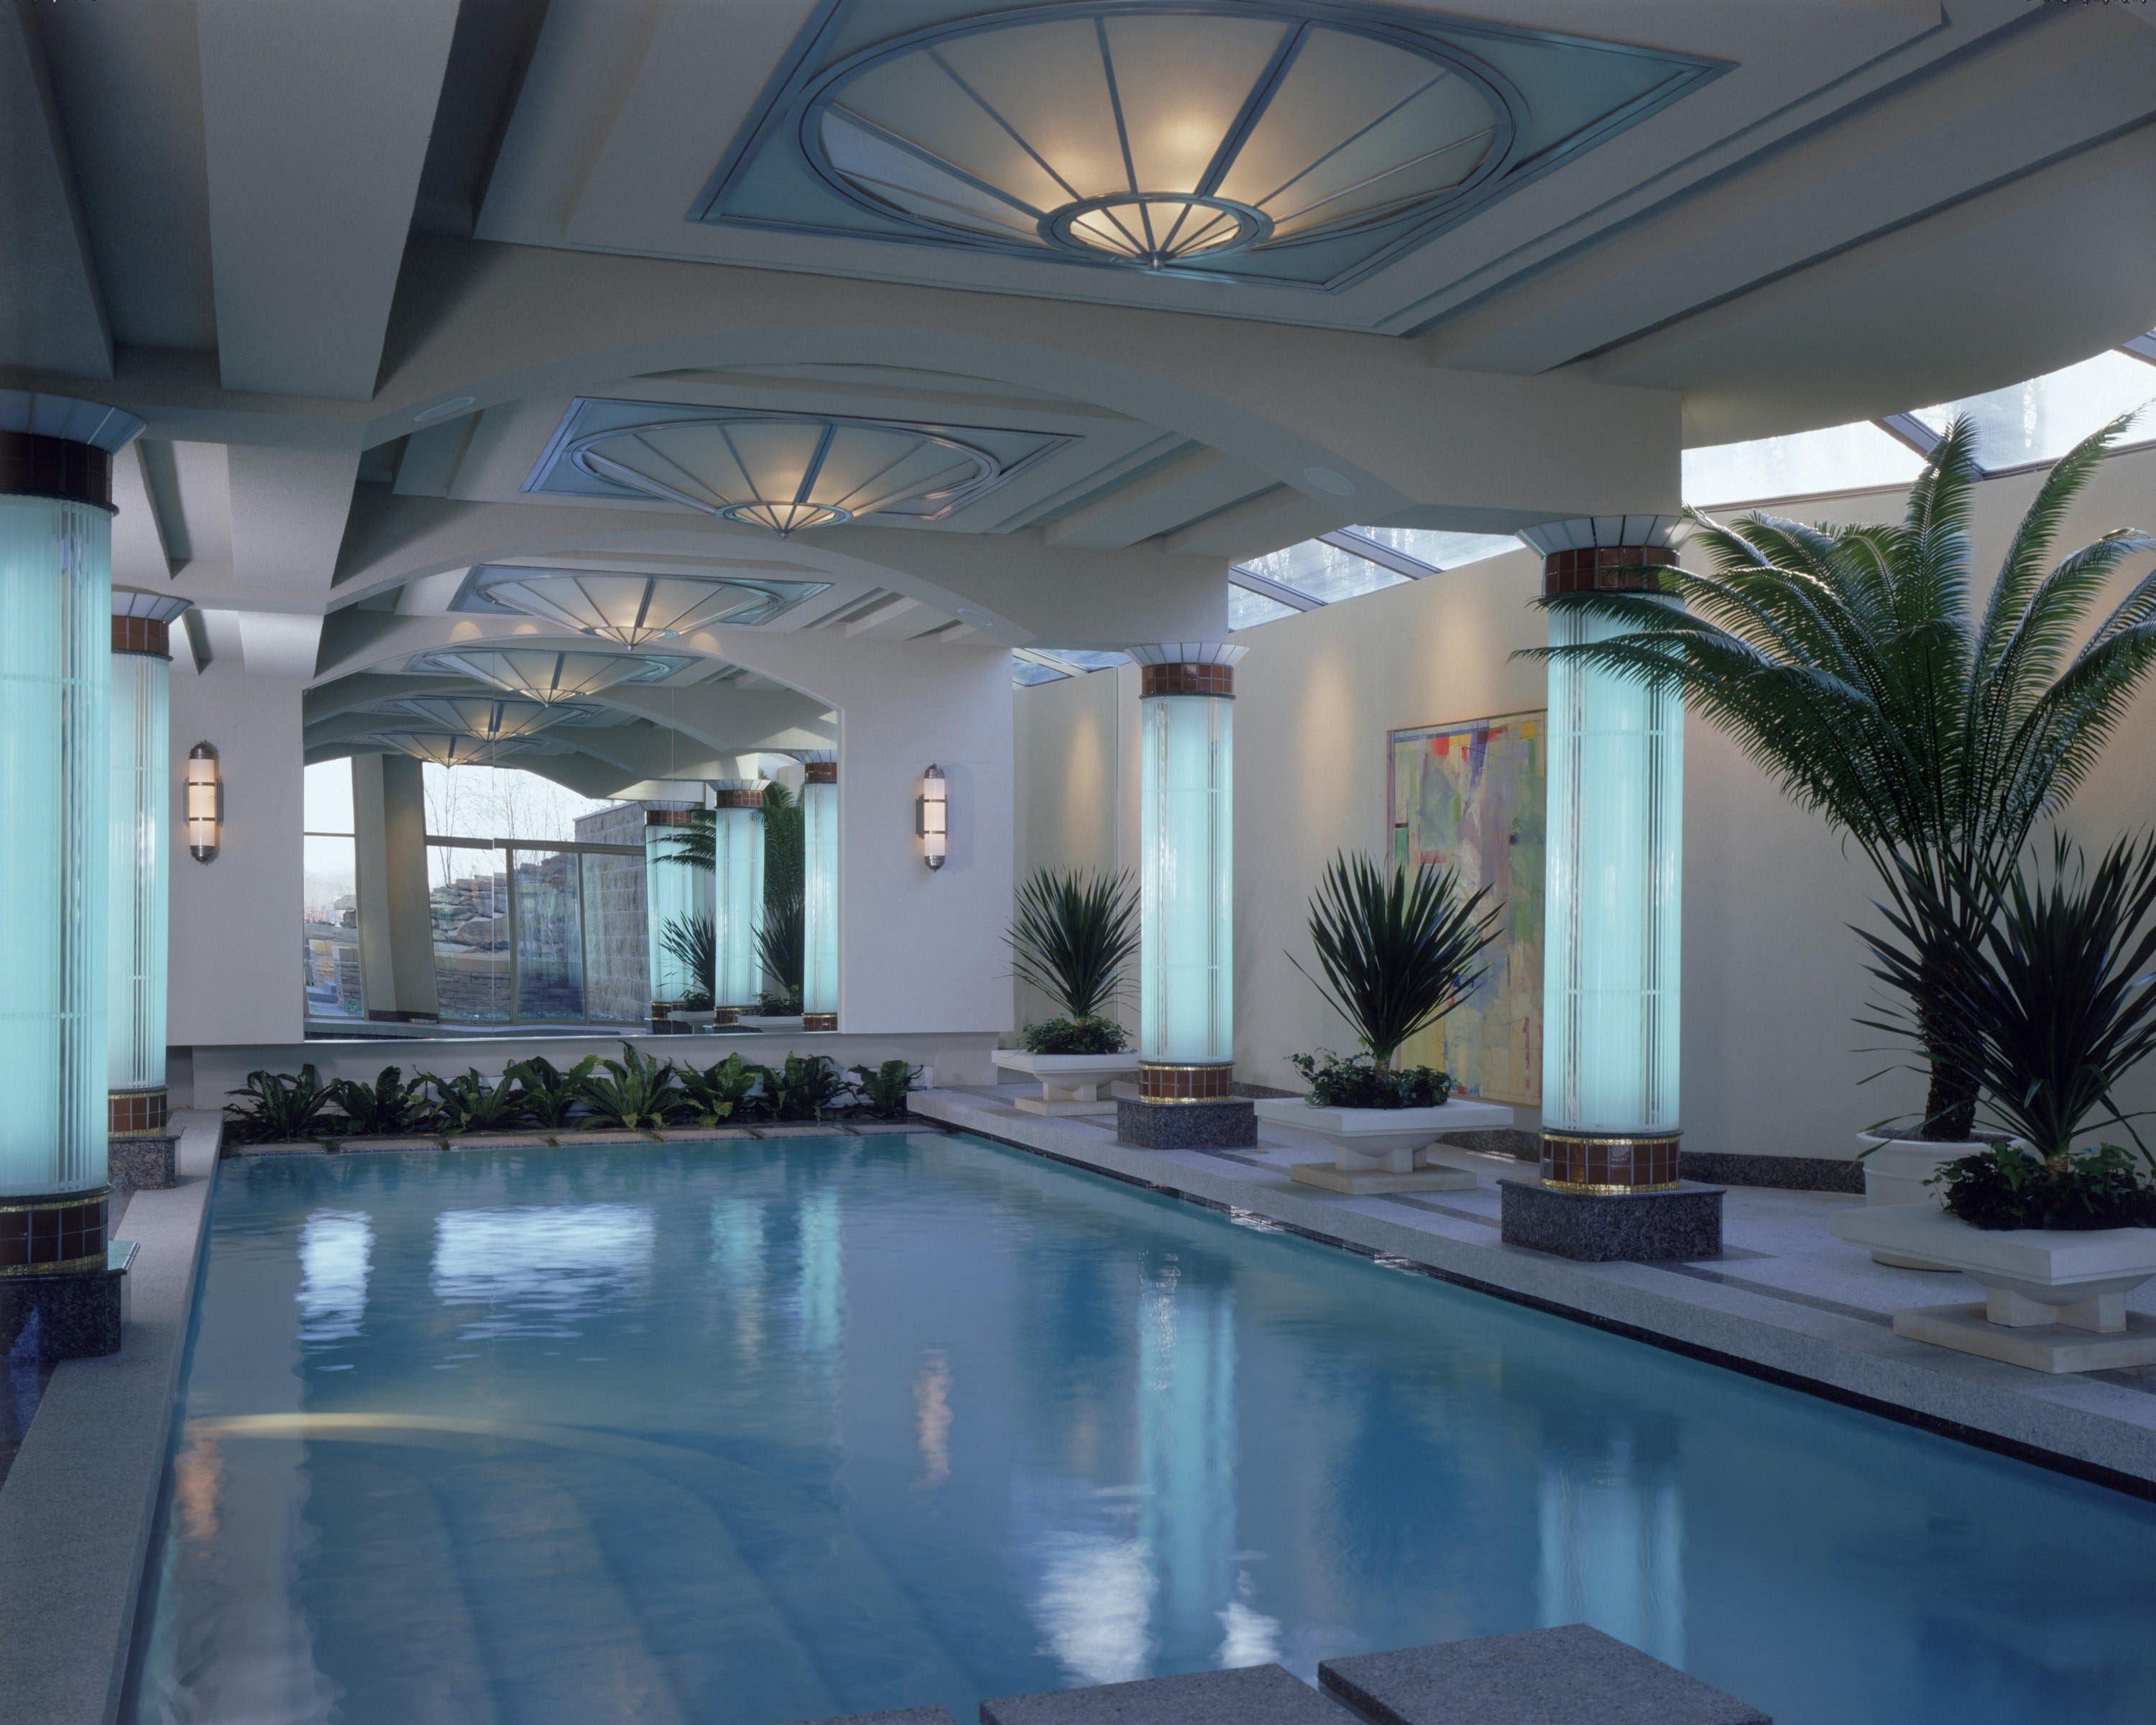 HGTV spotlights Indoor pool designed by DesRosiers Architects